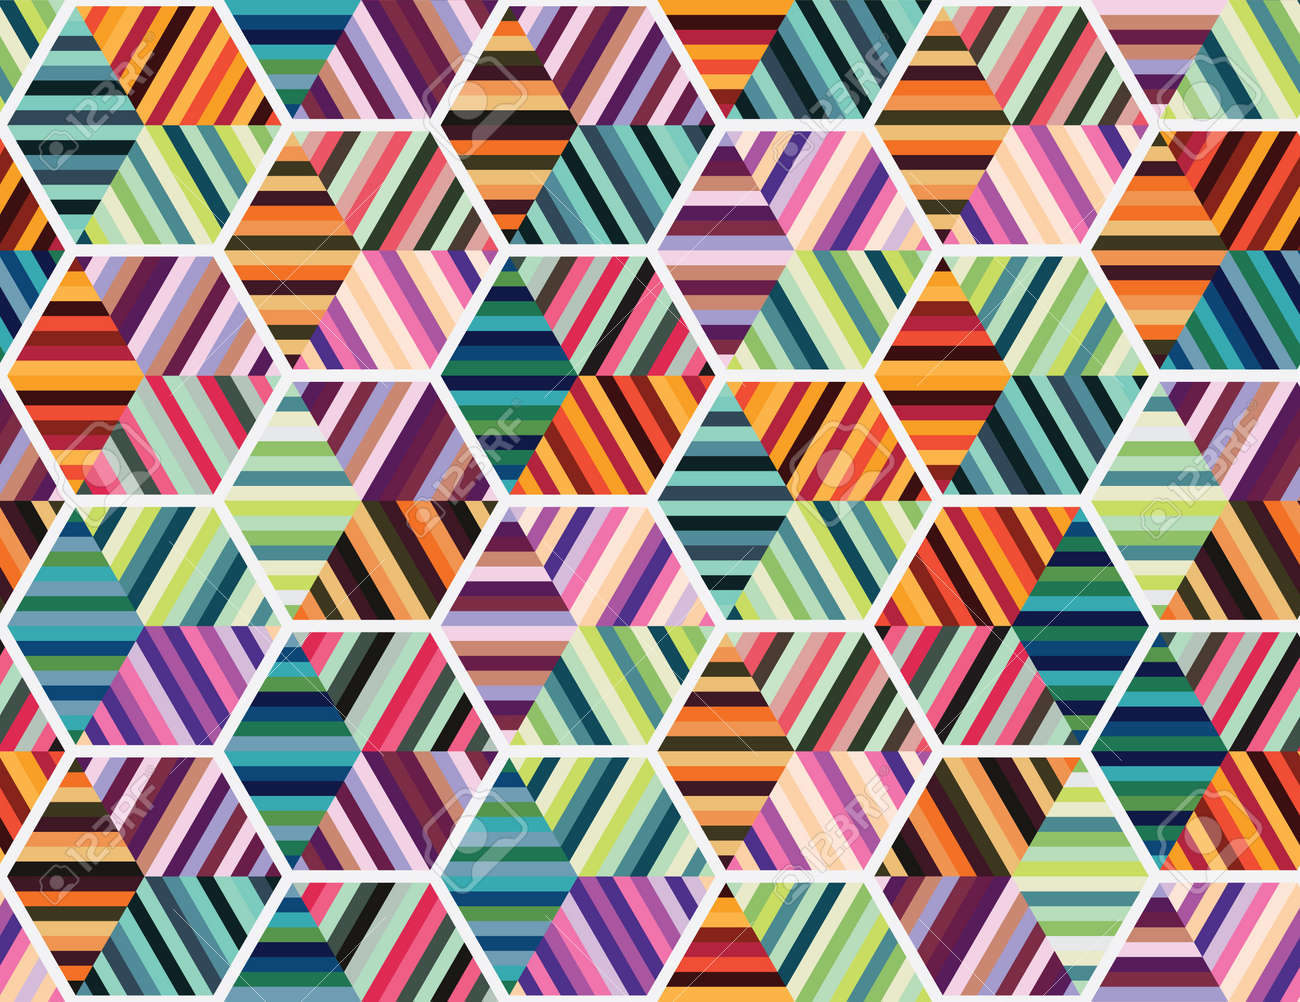 Seamless geometrical pattern with colourful shapes - 121819104